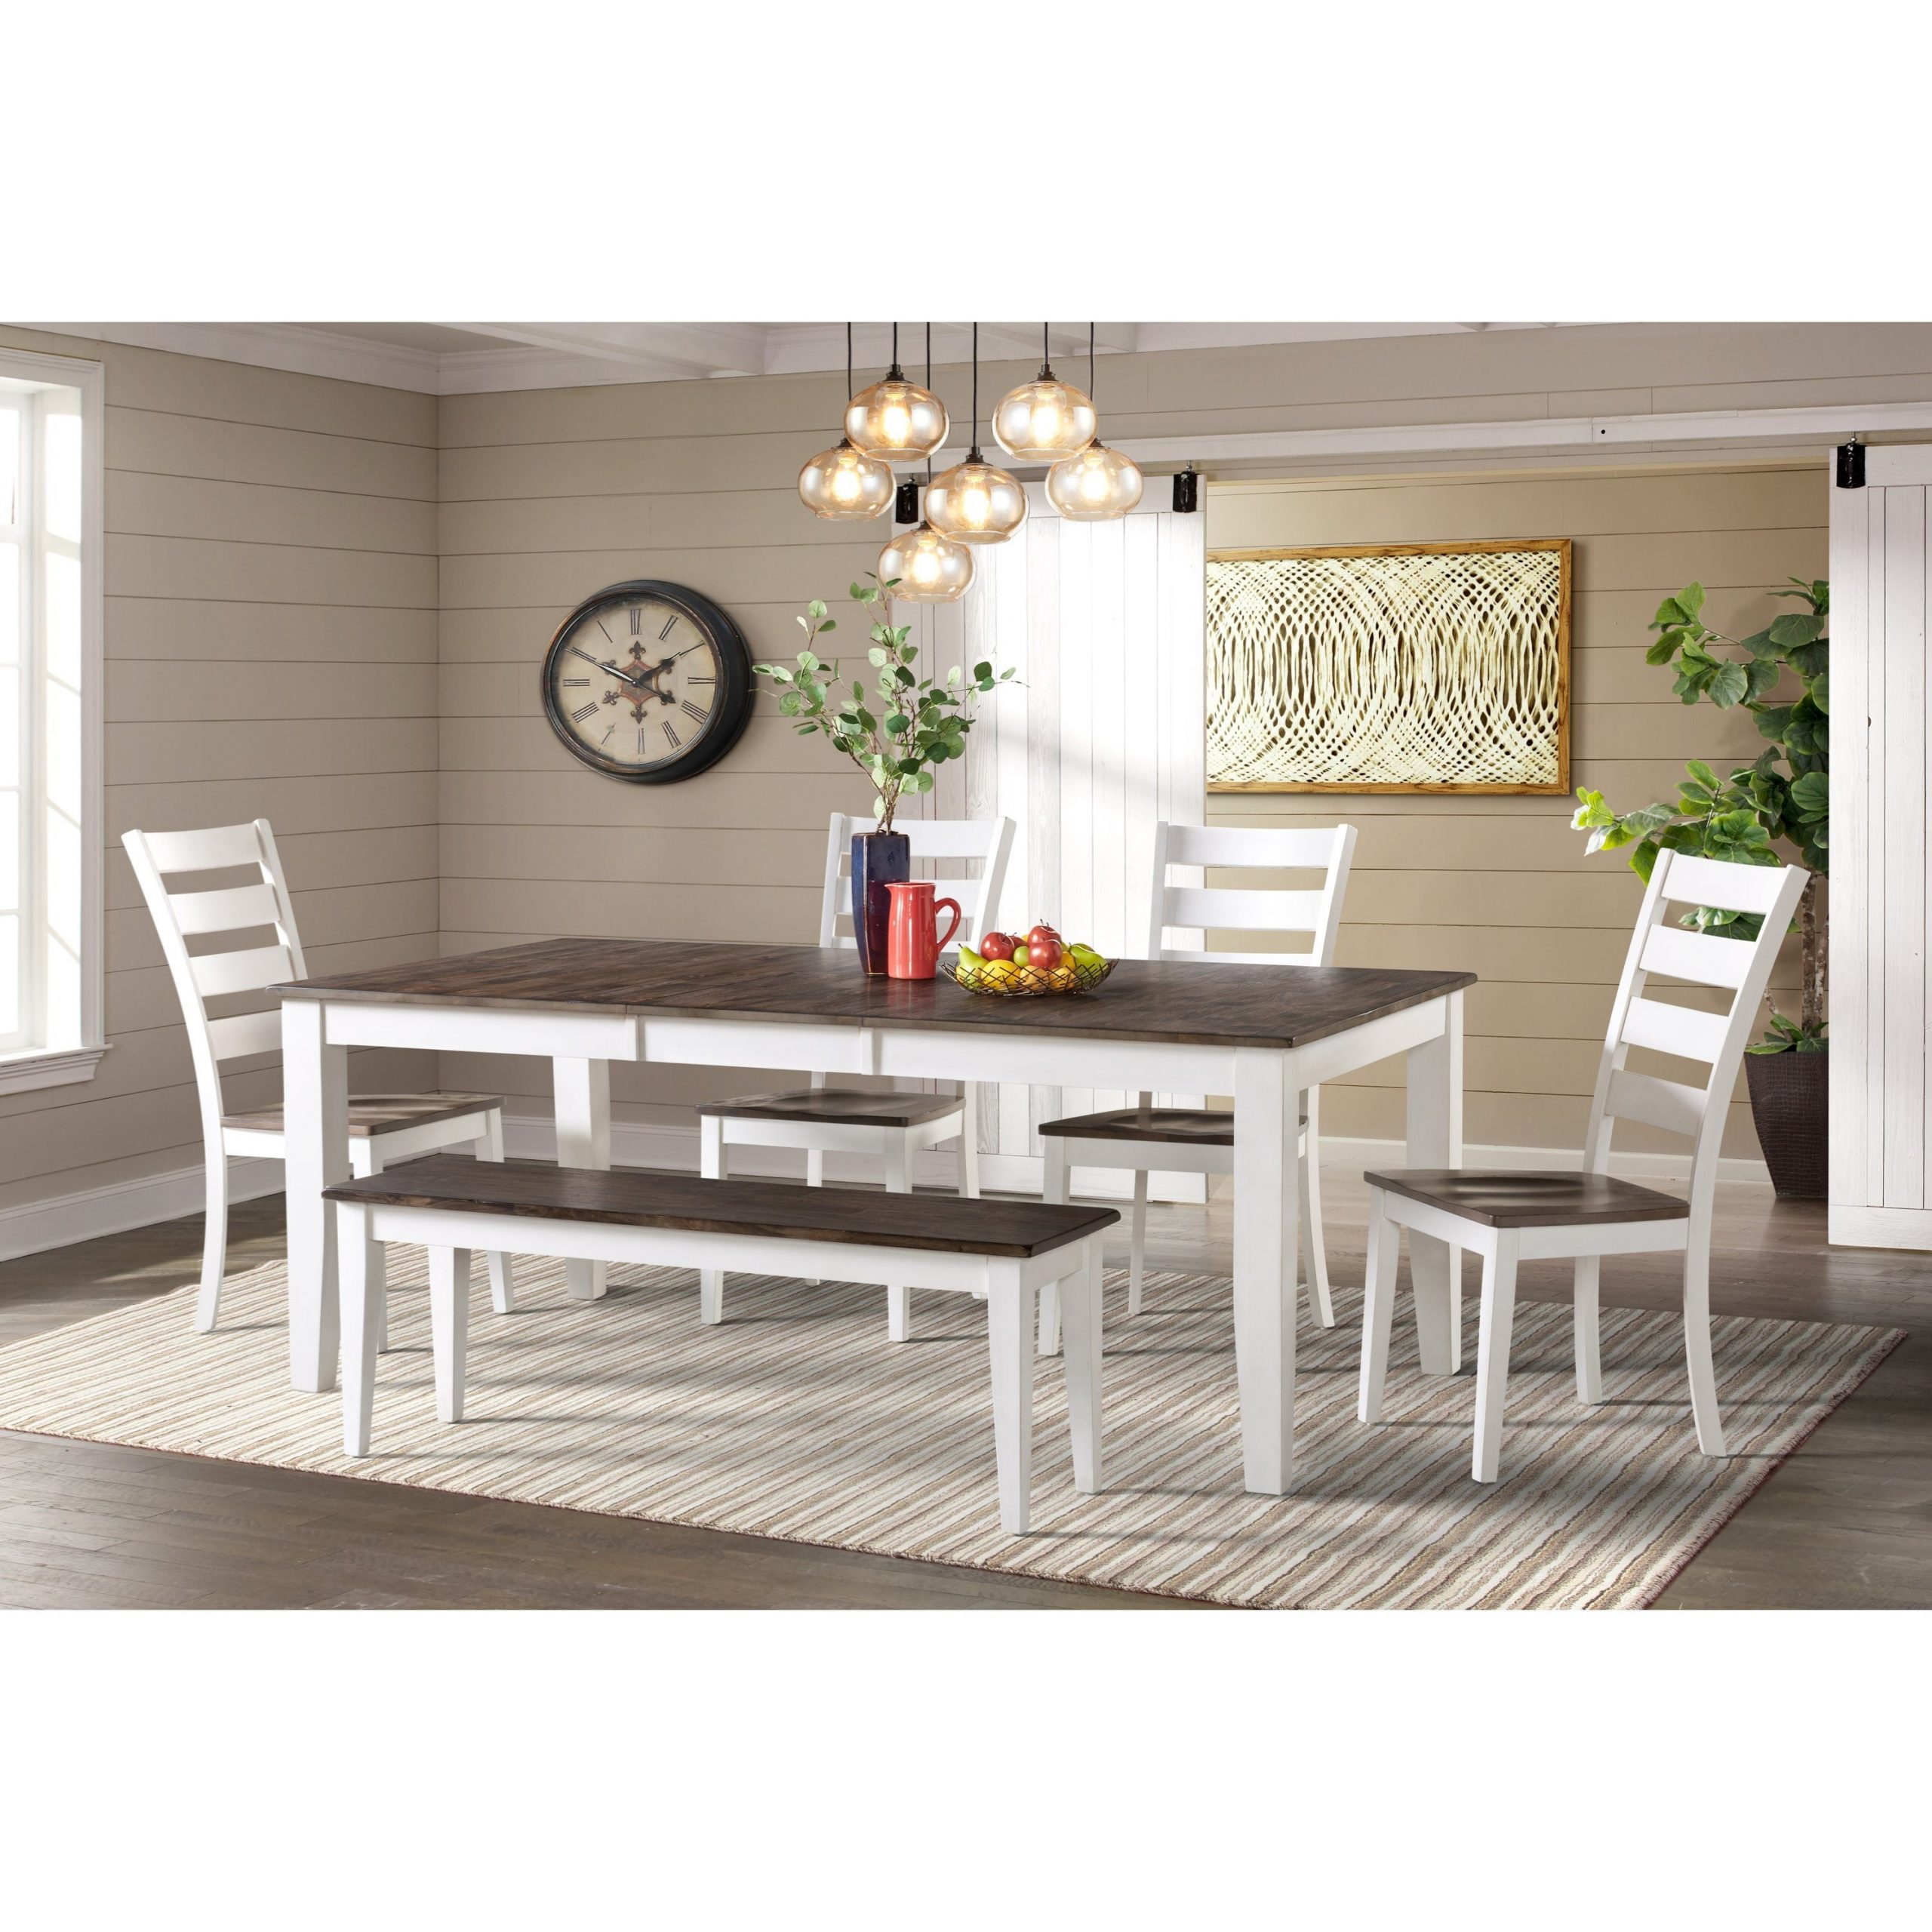 Intercon Kona Transitional 6 Piece Dining Room Set With Intended For Well Known Bistro Transitional 4 Seating Square Dining Tables (View 11 of 24)